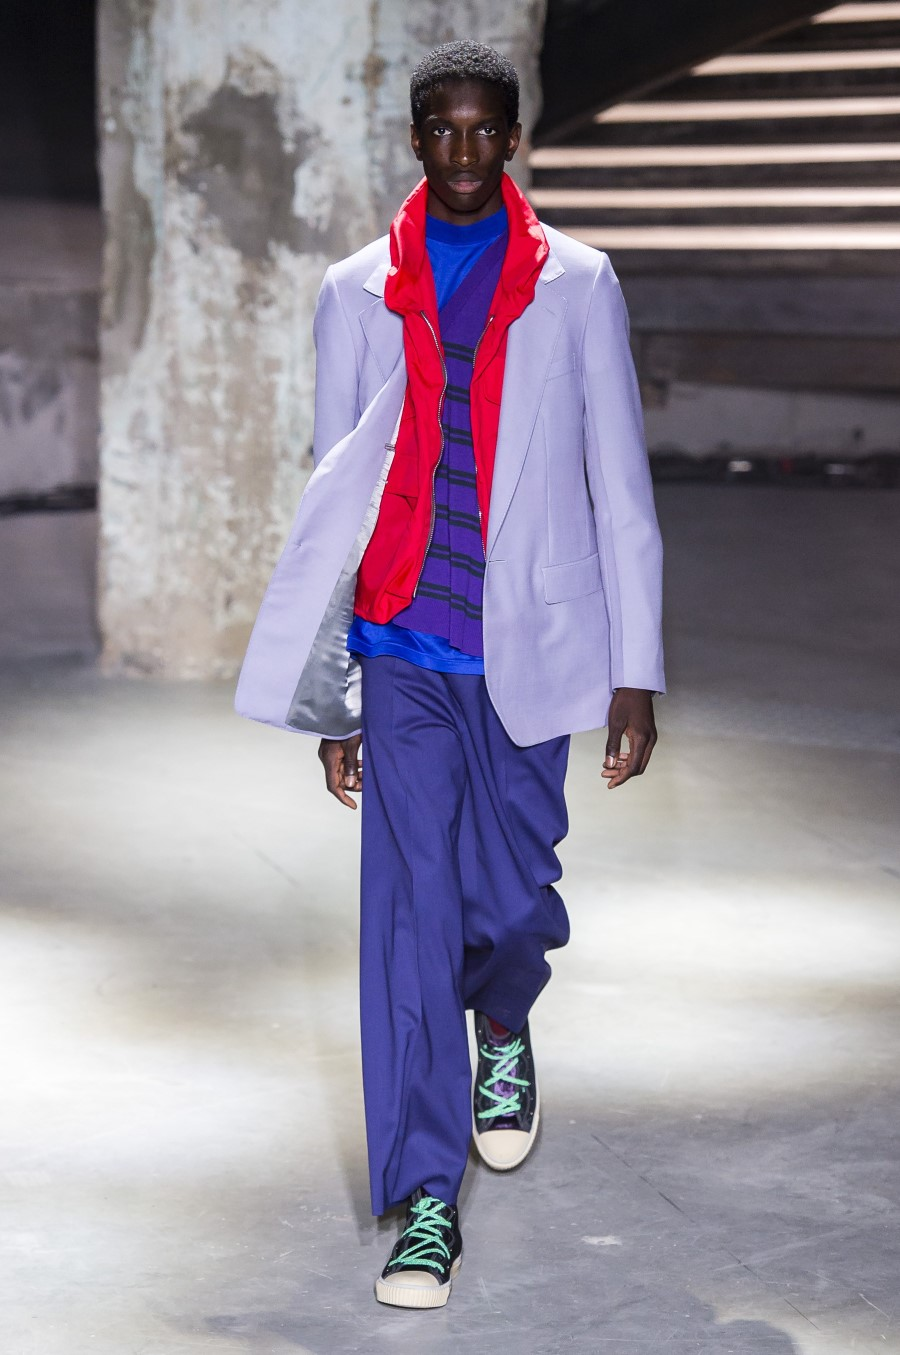 Lanvin Spring/Summer 2019 - Paris Fashion Week